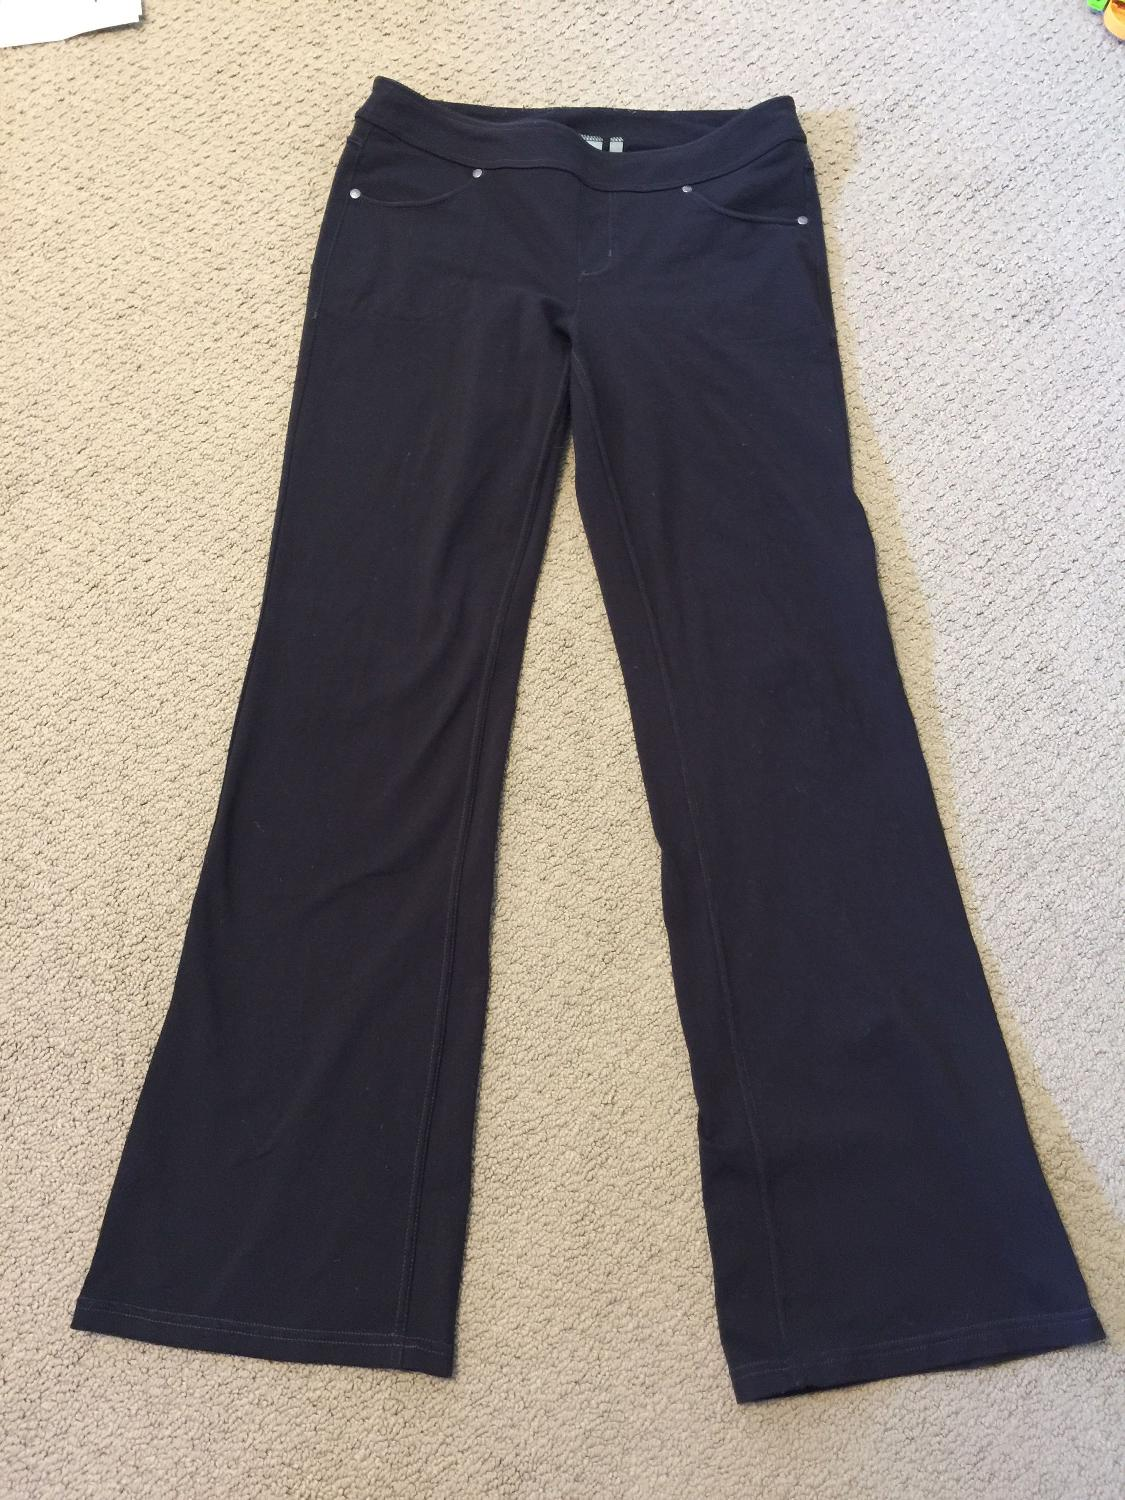 3970c6480986a Find more Euc Medium Athleta Bootcut Yoga Pants for sale at up to 90% off